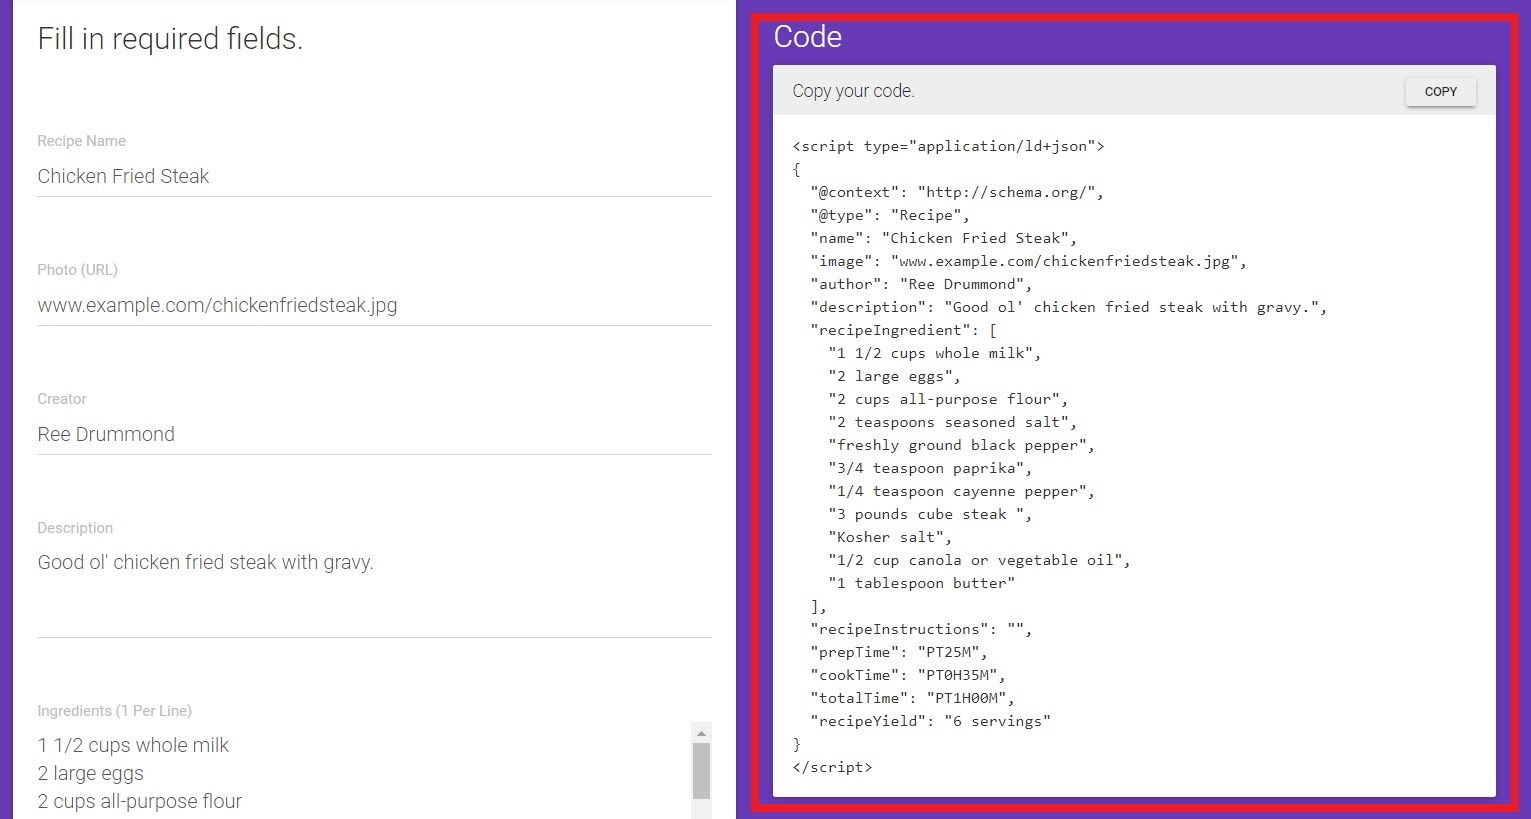 Copy the generated code and paste it below the <head> section of your recipe page's HTML